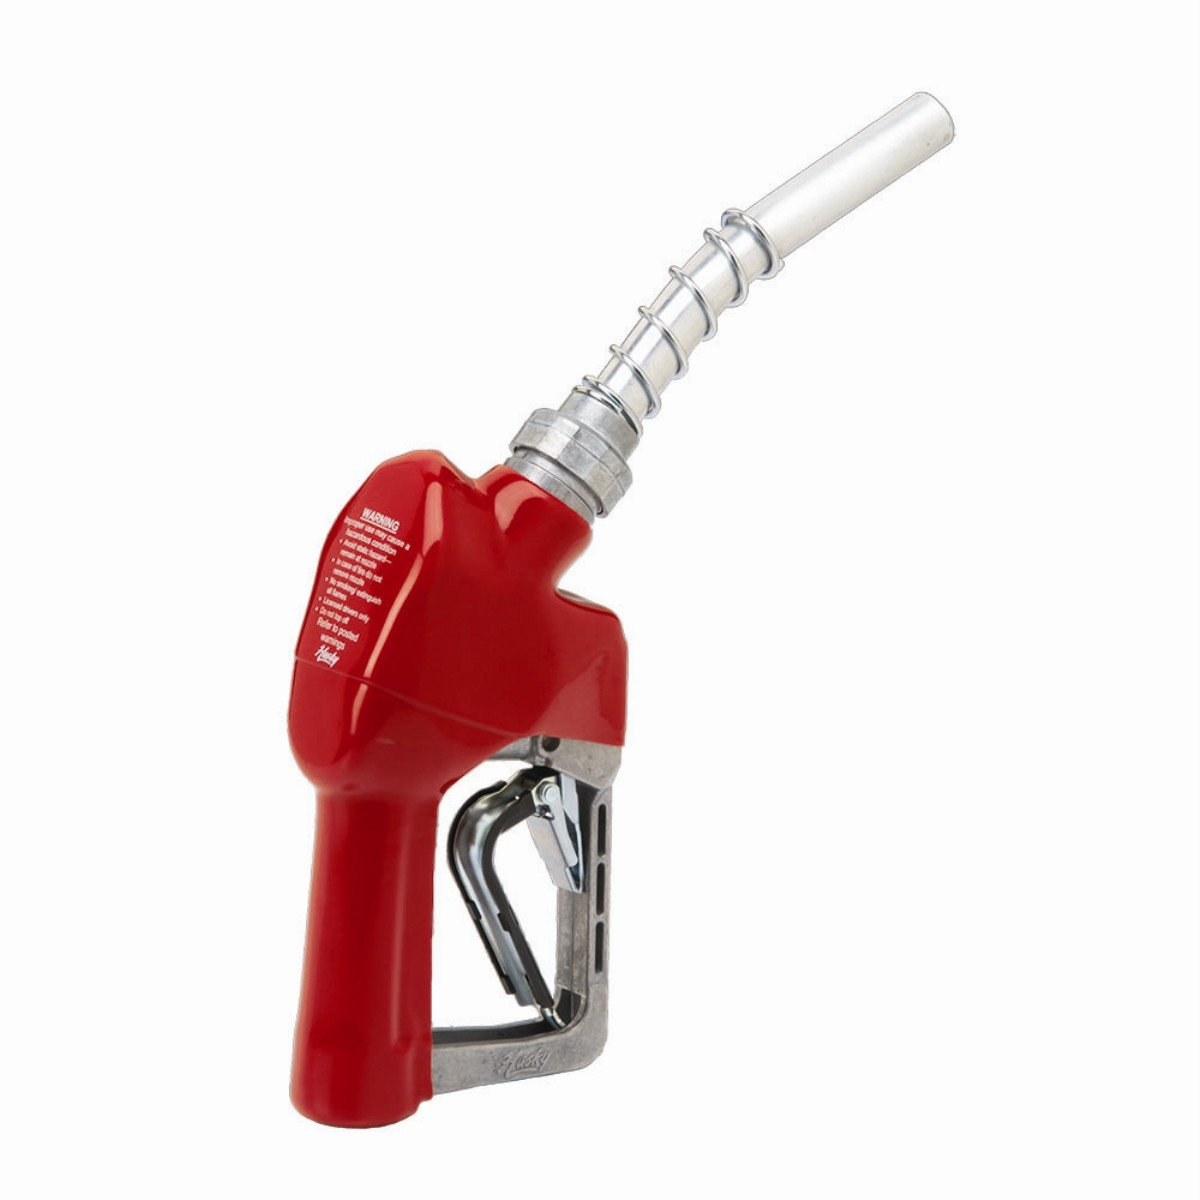 Husky 159404N-02 New X Unleaded Nozzle with Three Notch Hold Open Clip and Full Grip Guard